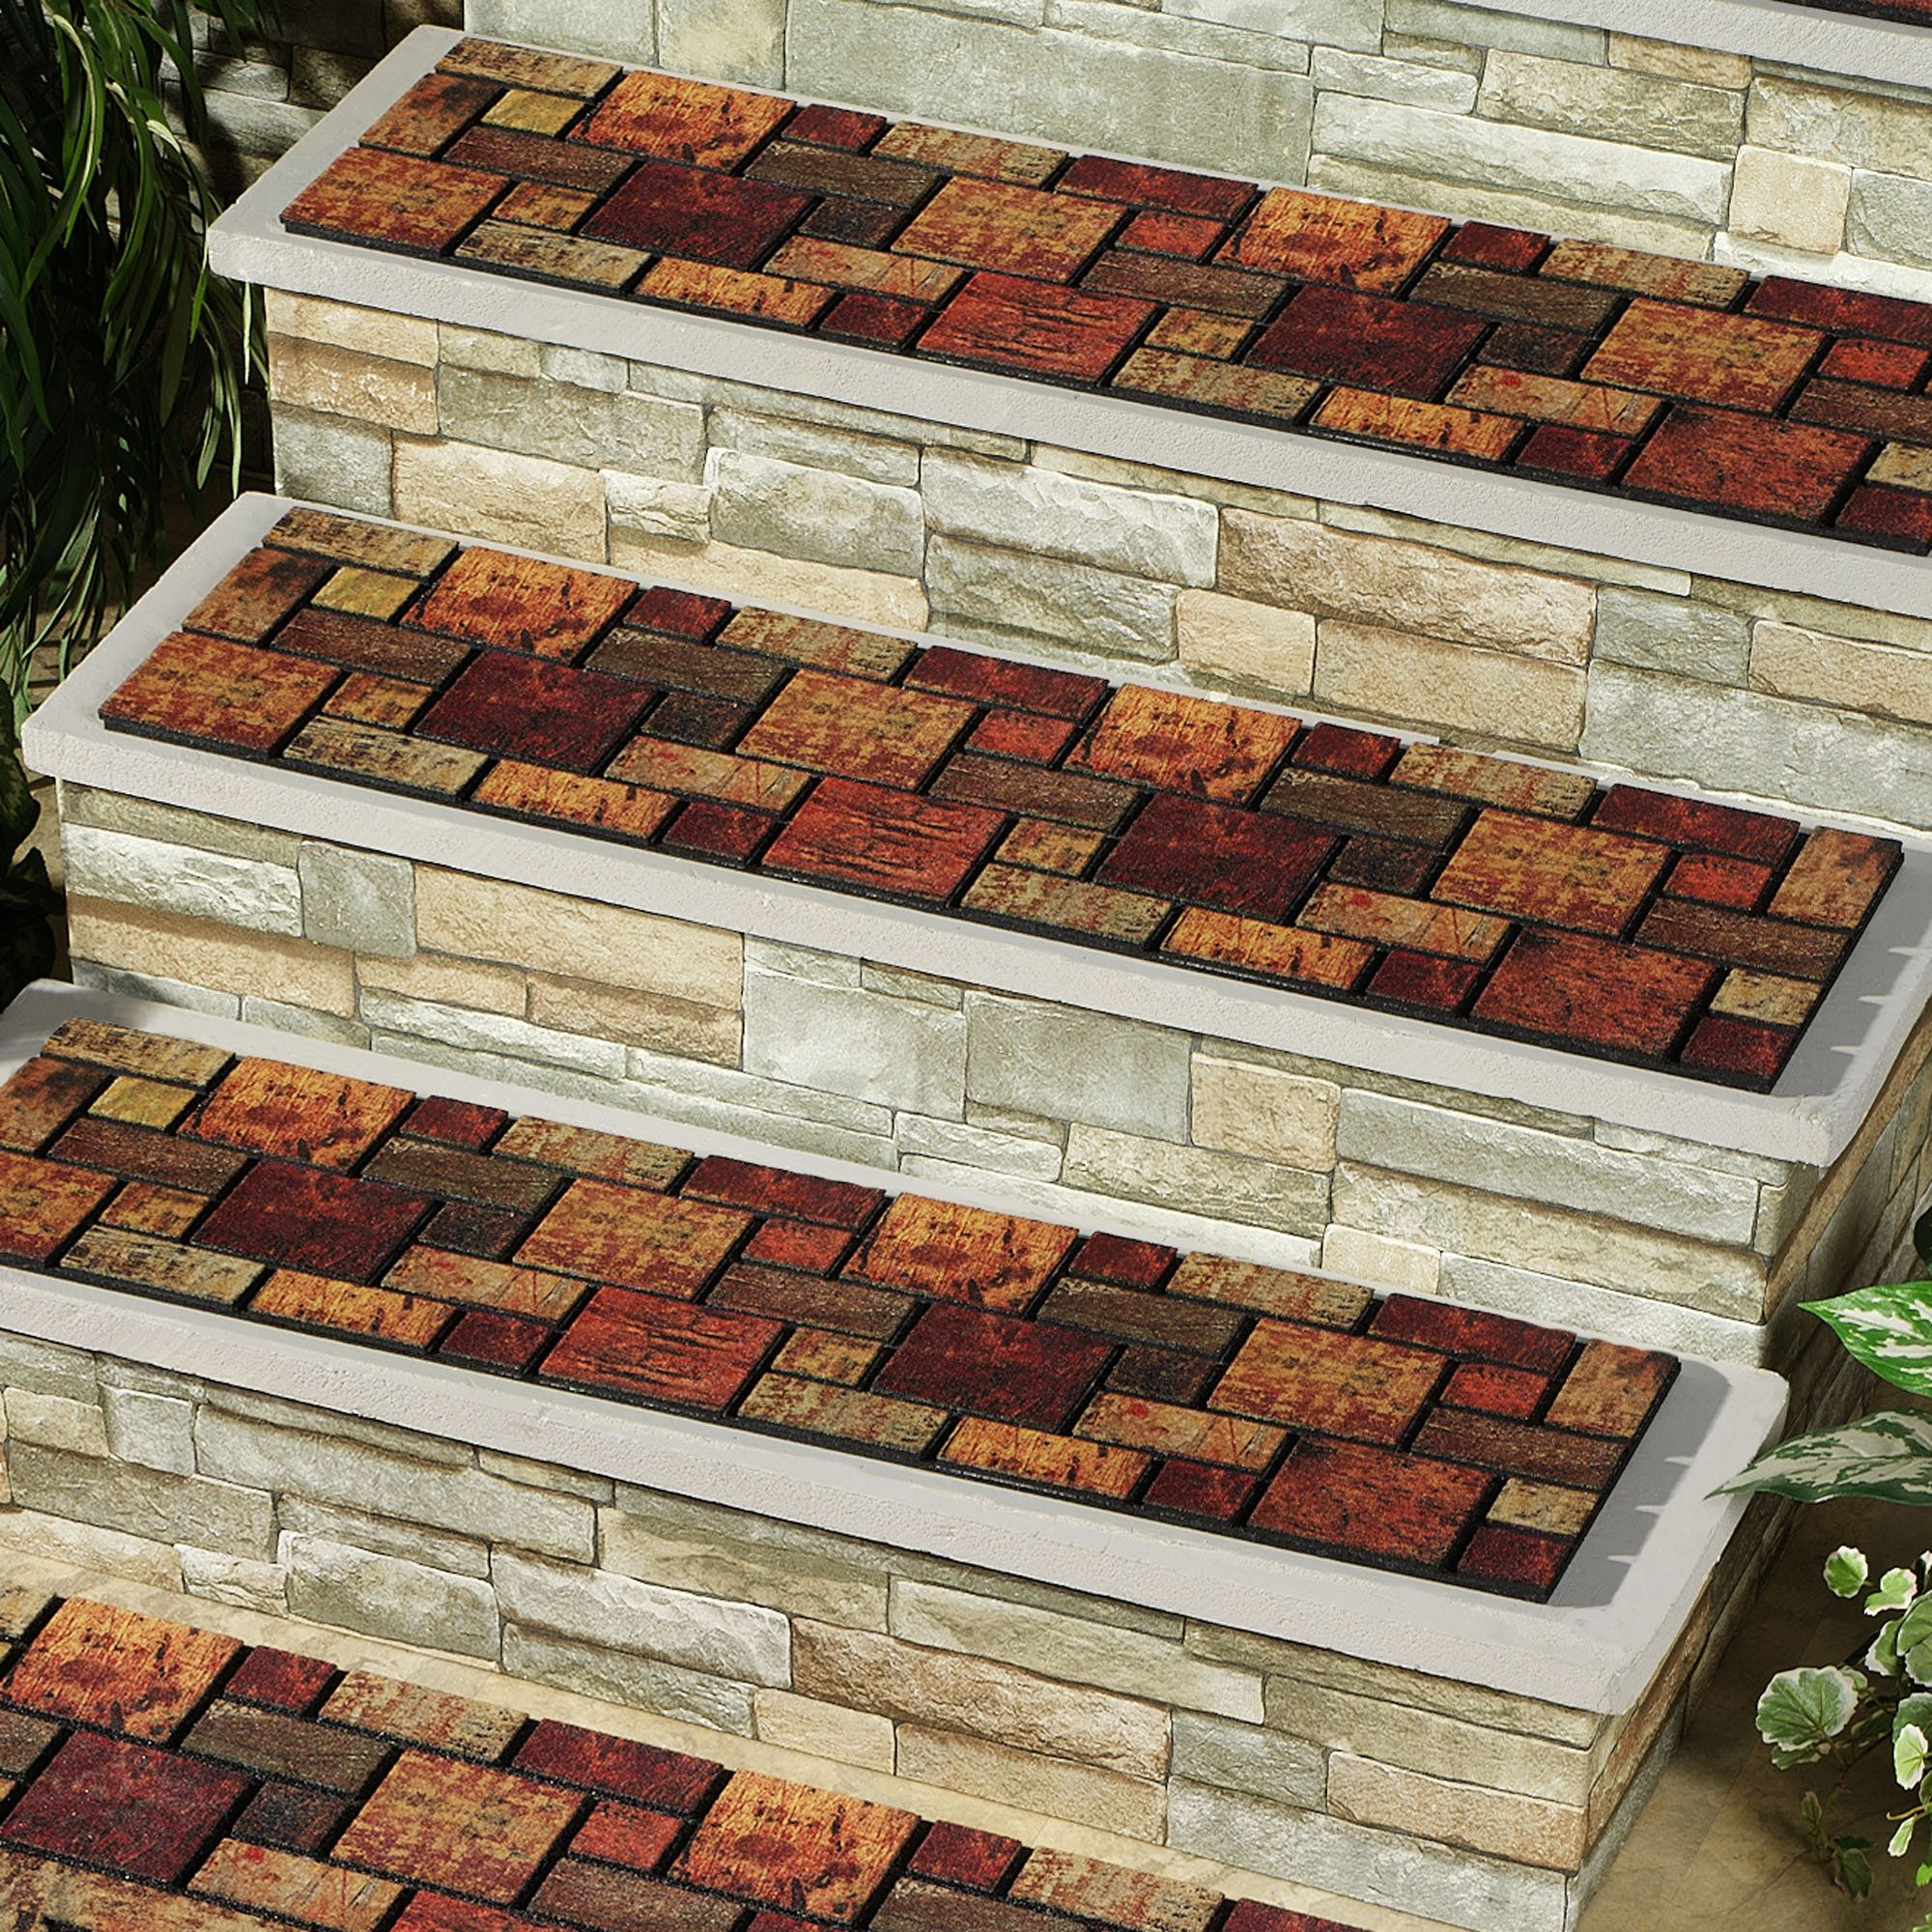 Decorative Outdoor Stair Treads | Home Textured Blocks Stair Tread Multi  Warm